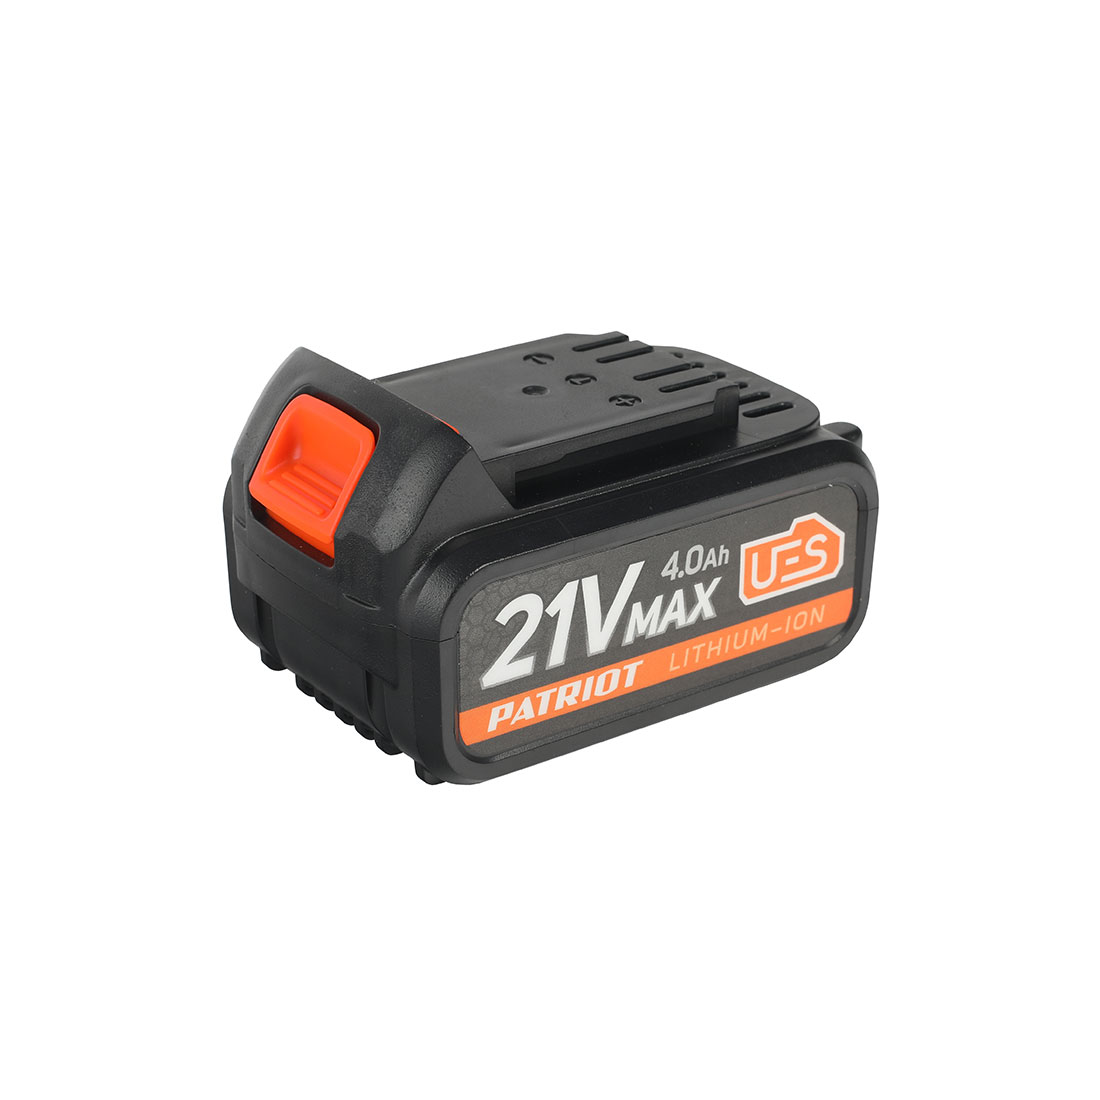 Аккумулятор Patriot BR 21V(Max) Li-ion 4,0Ah PRO UES 180301121 ― PATRIOT